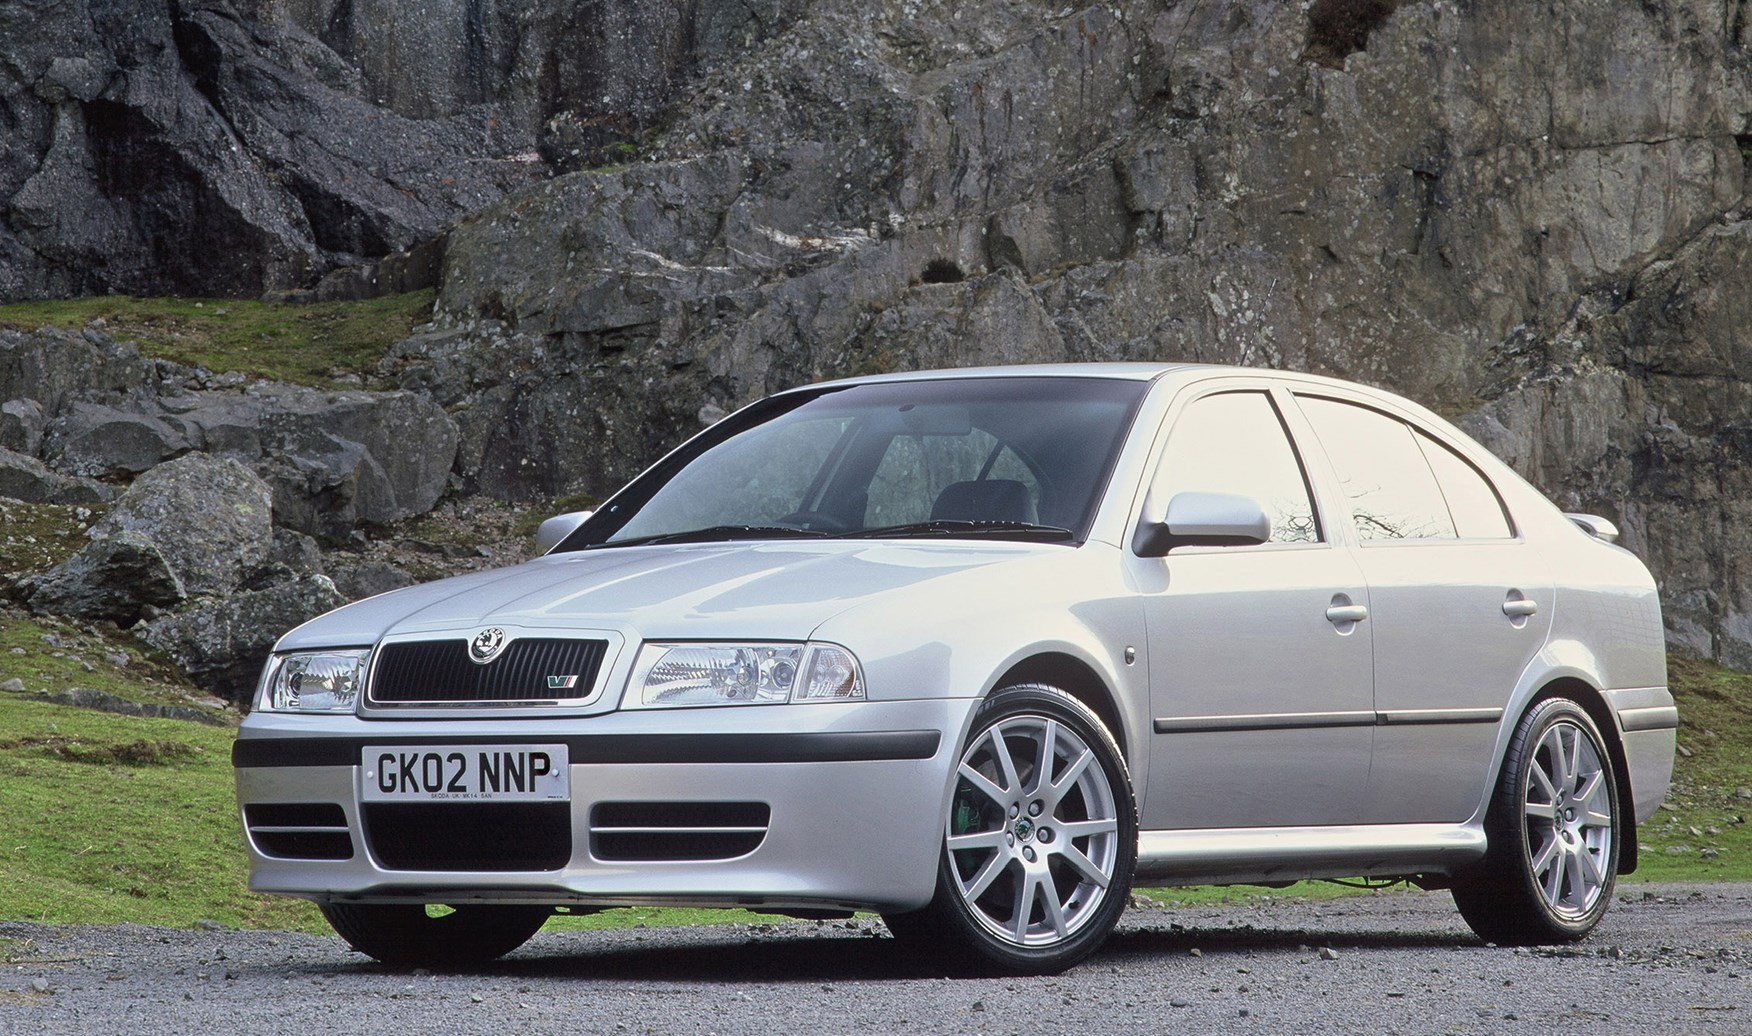 skoda octavia vrs review 2001 2005 parkers. Black Bedroom Furniture Sets. Home Design Ideas